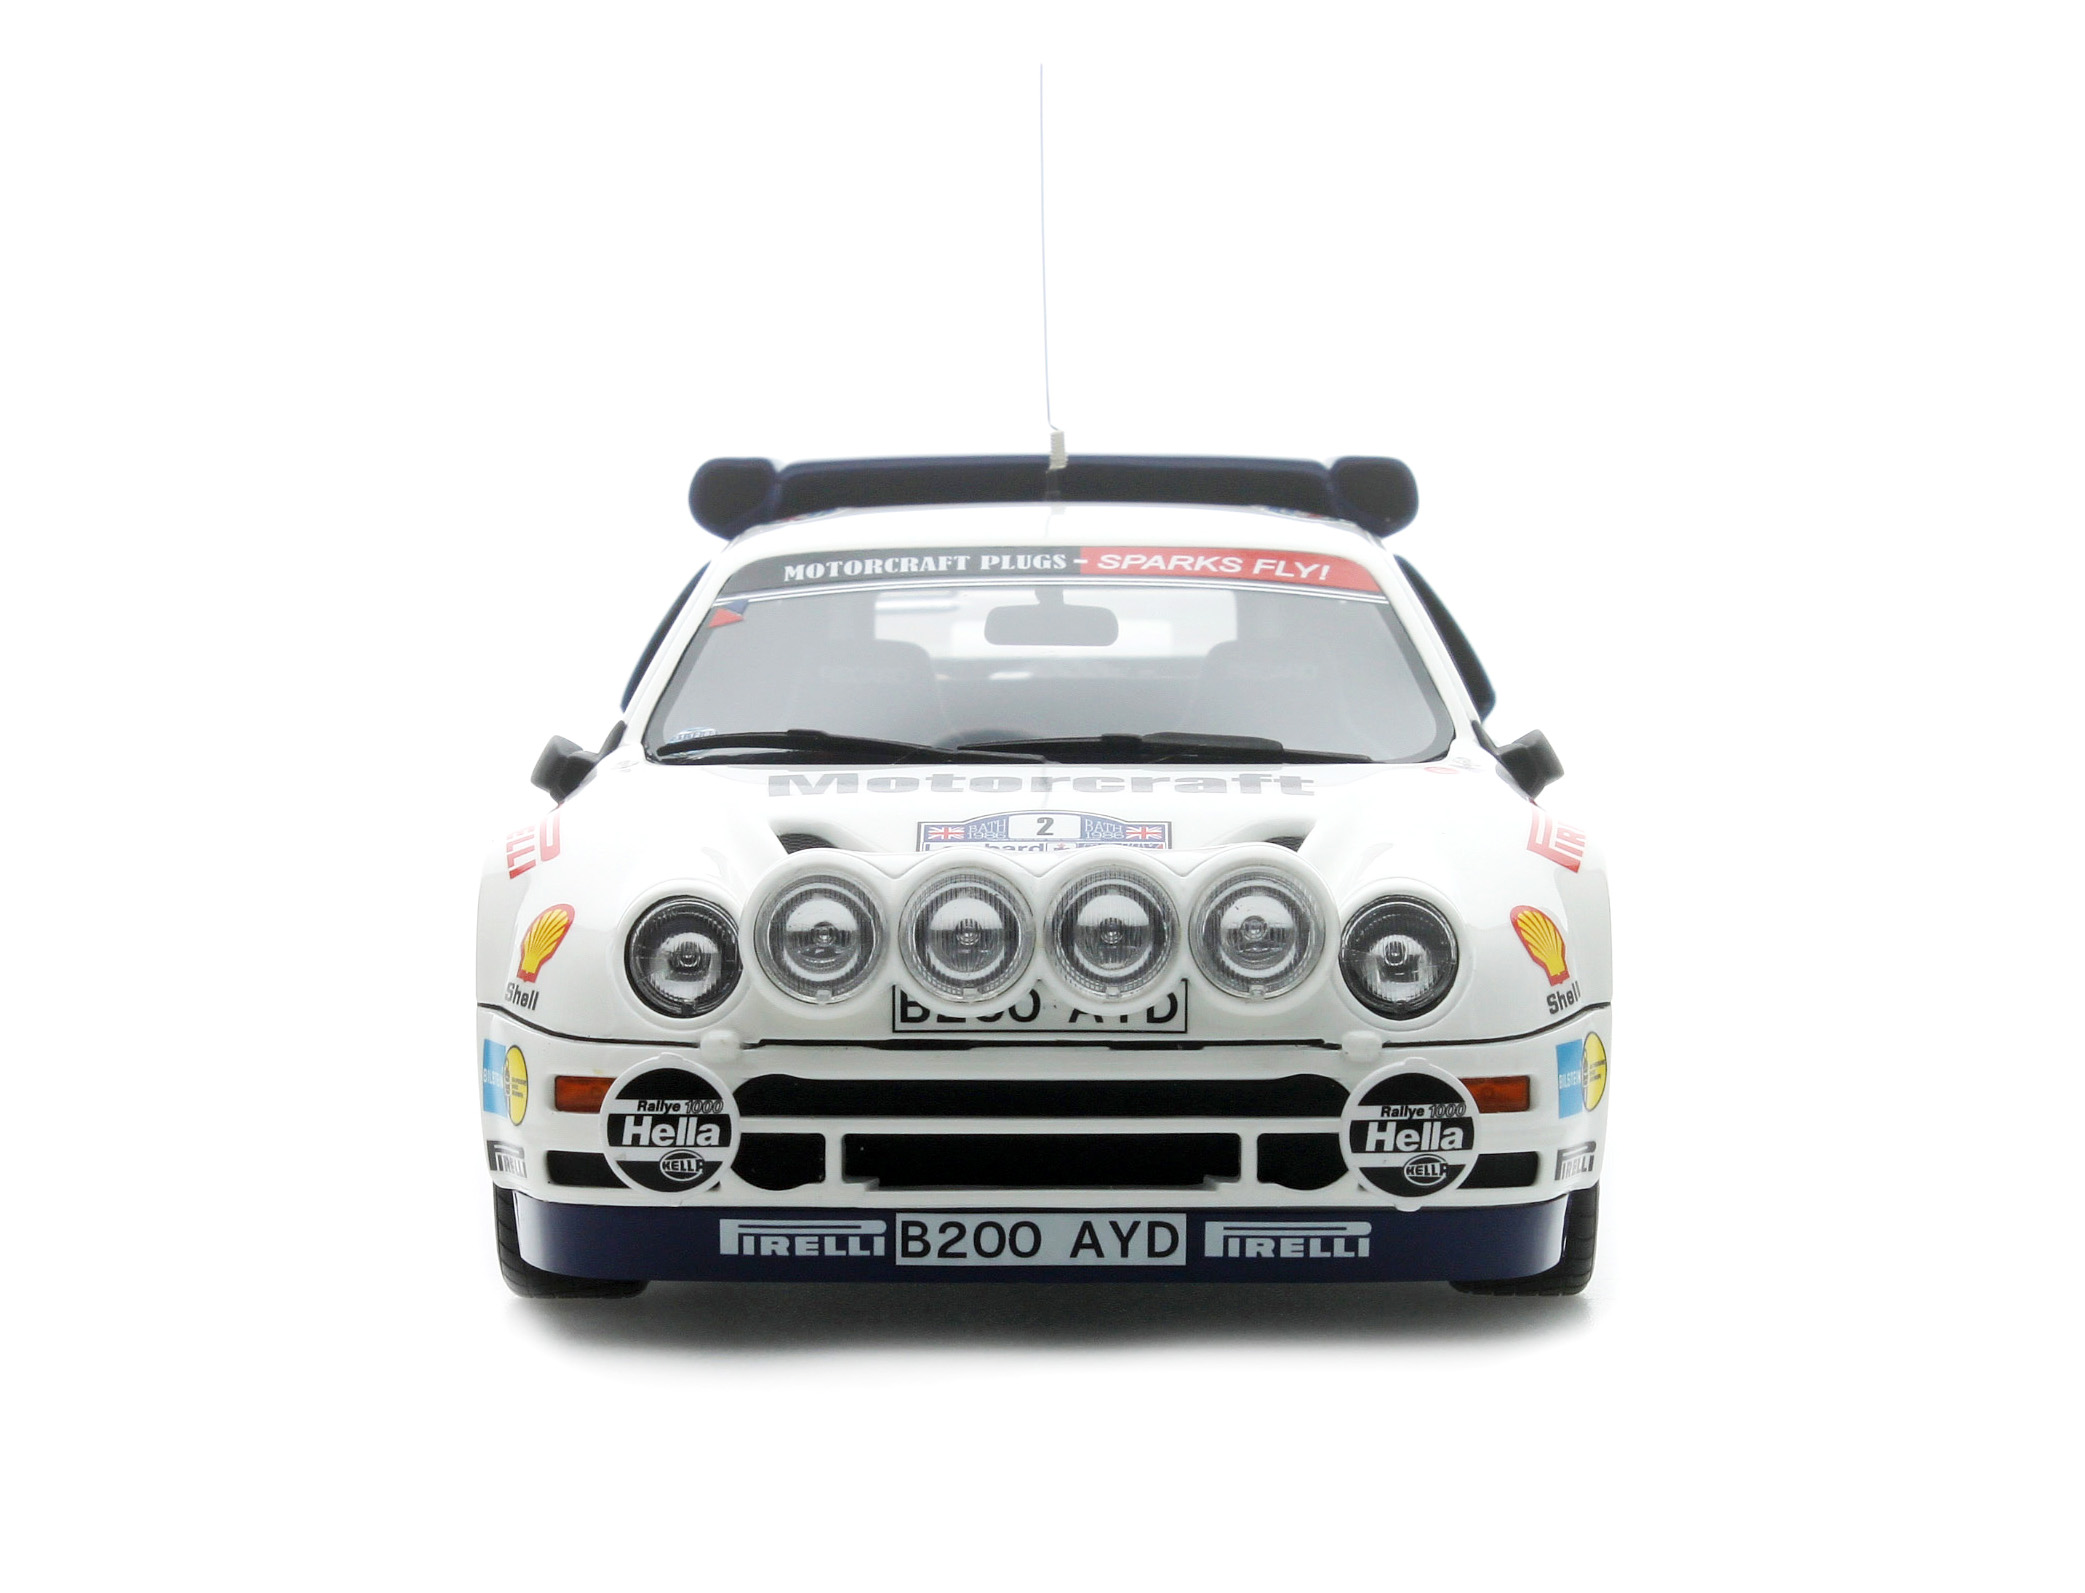 ford rs200 groupe b lombard rally rac 1986 limited to 2000 pcs otto mobile